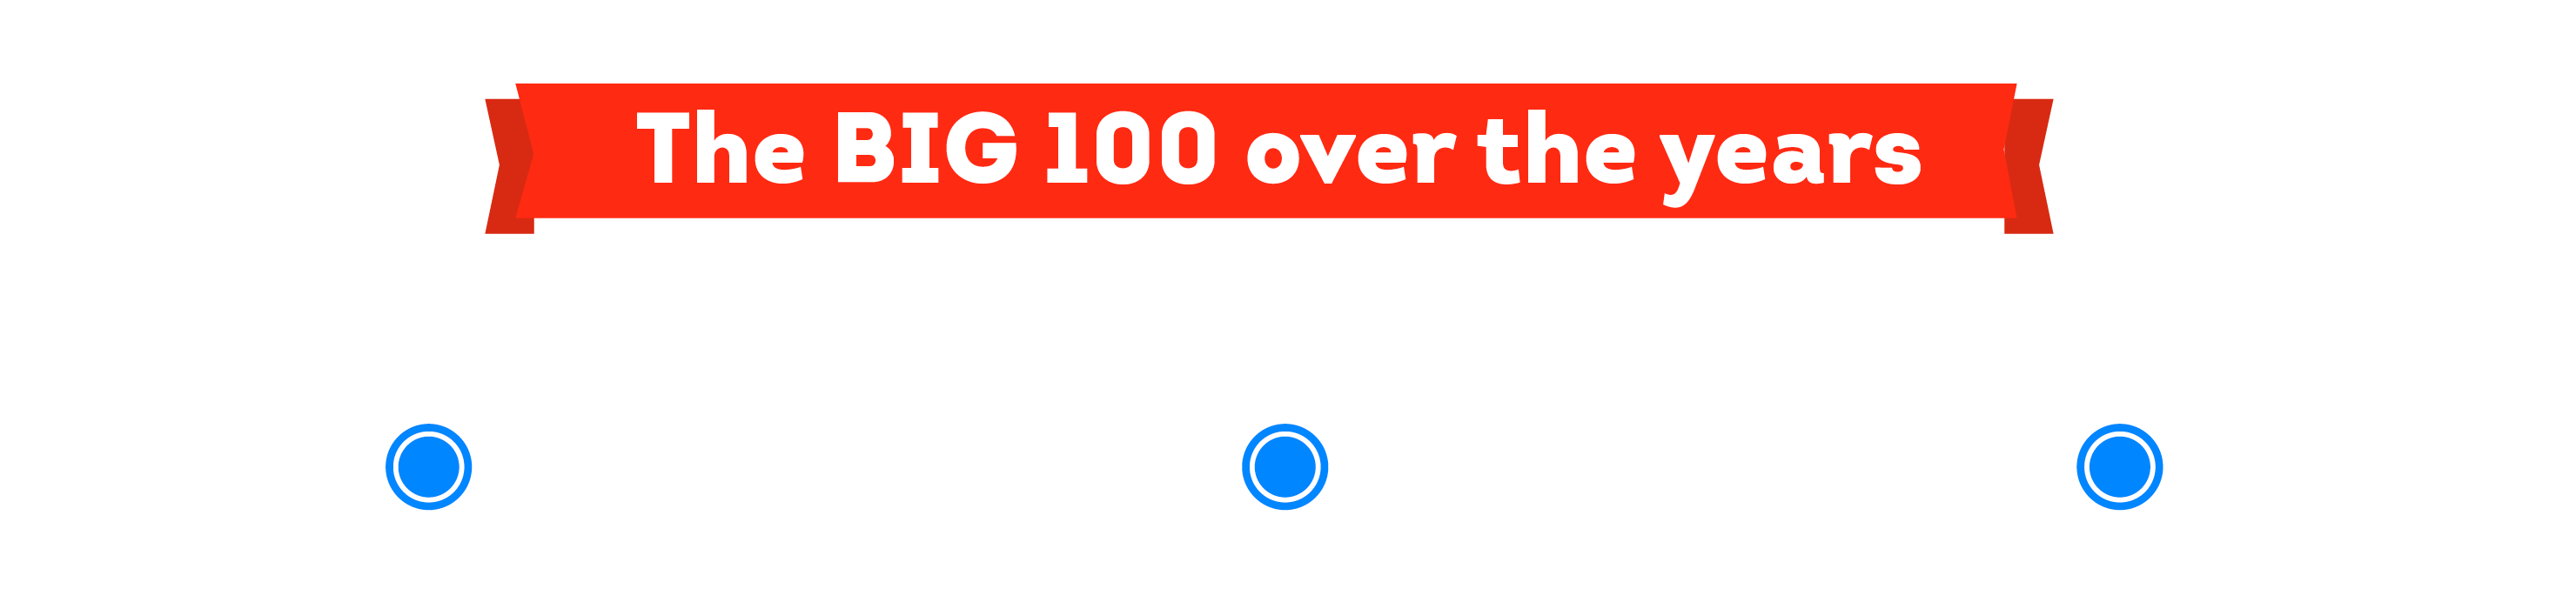 Timeline of Big 100 from 2019-2021 - The Big 100 over the years. 2019, 2020 and 2021